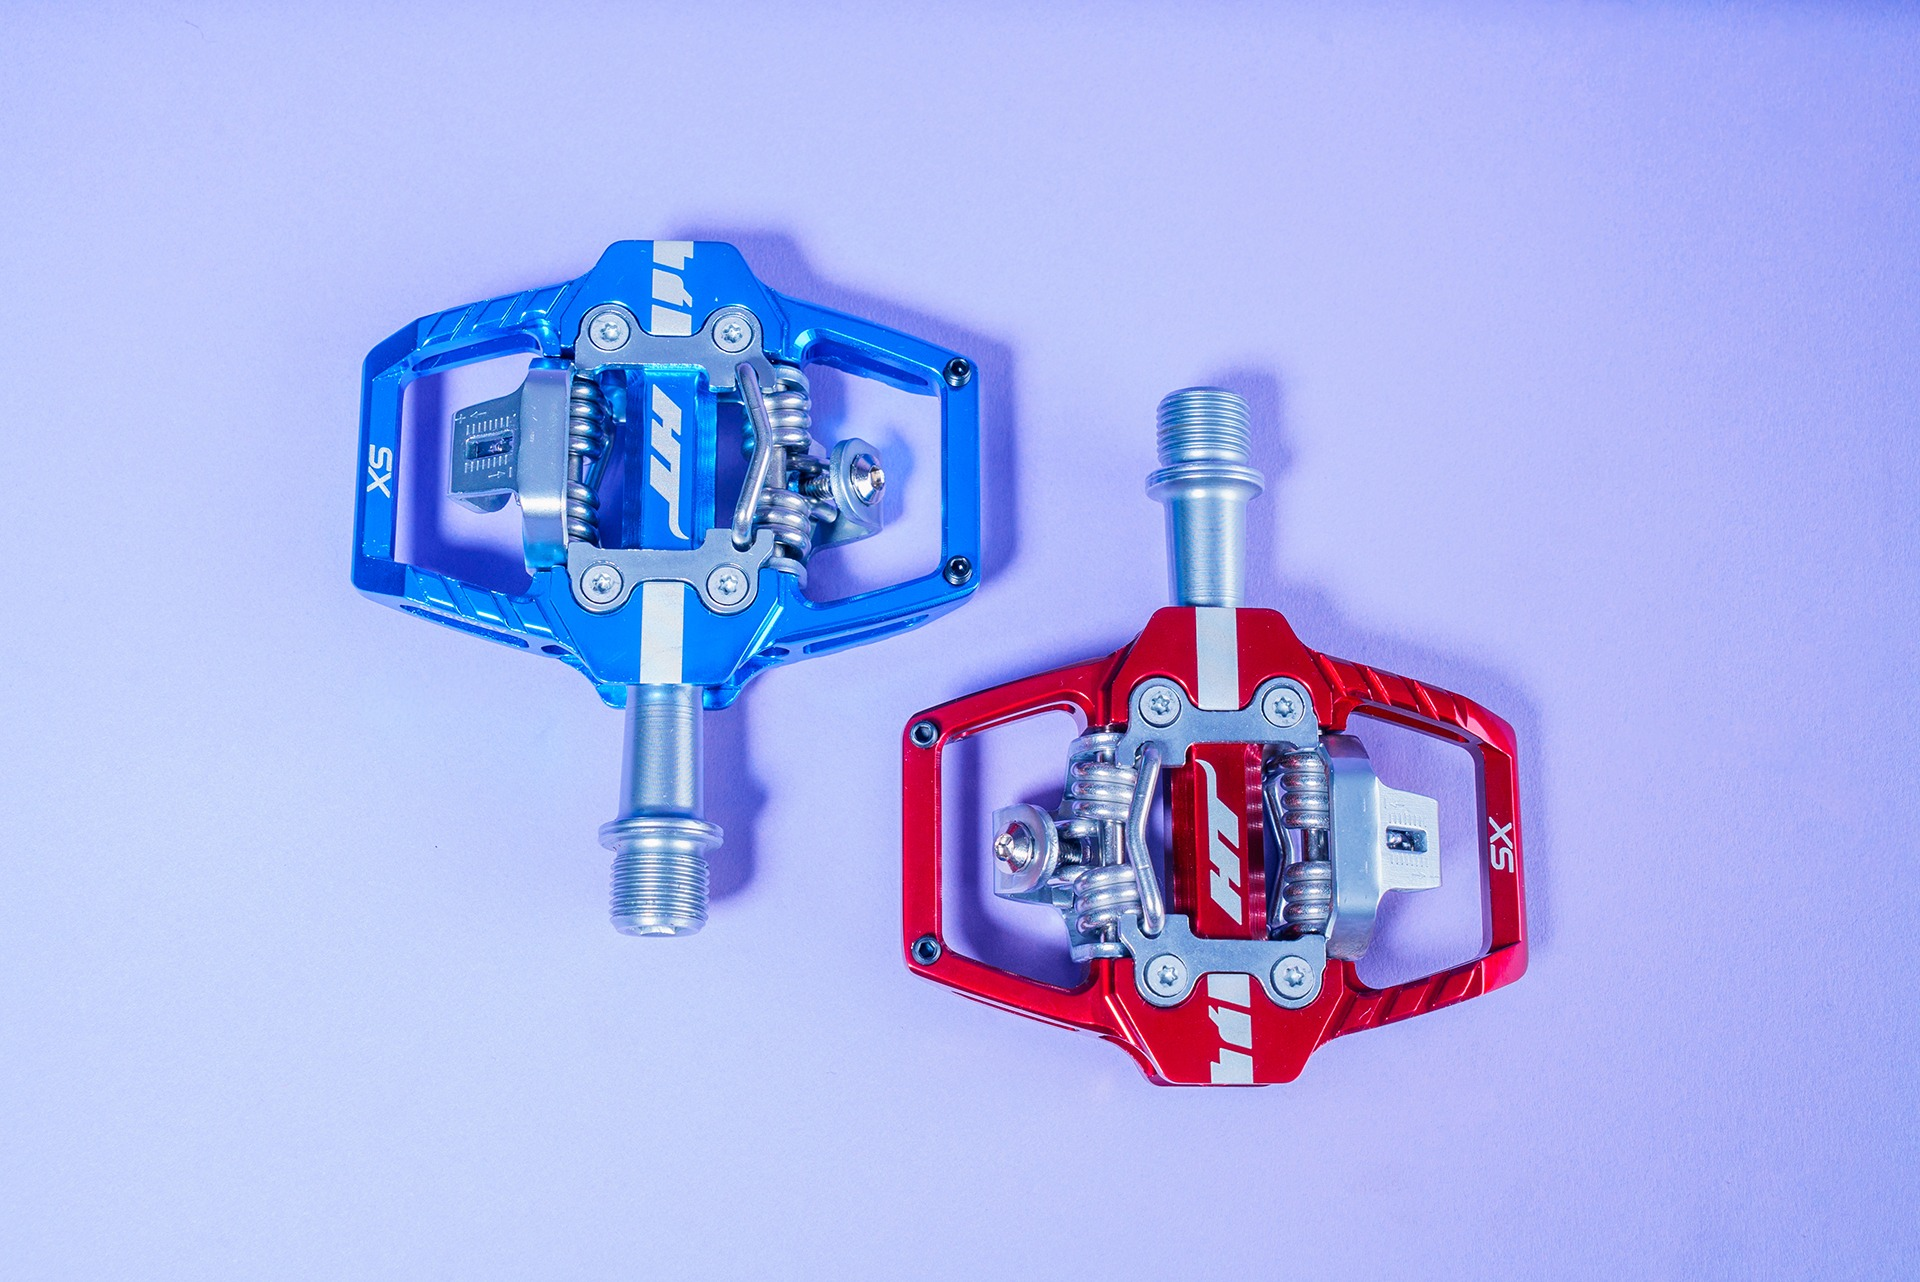 HT COMPONENTS - T1-SX PEDALS - REVIEW